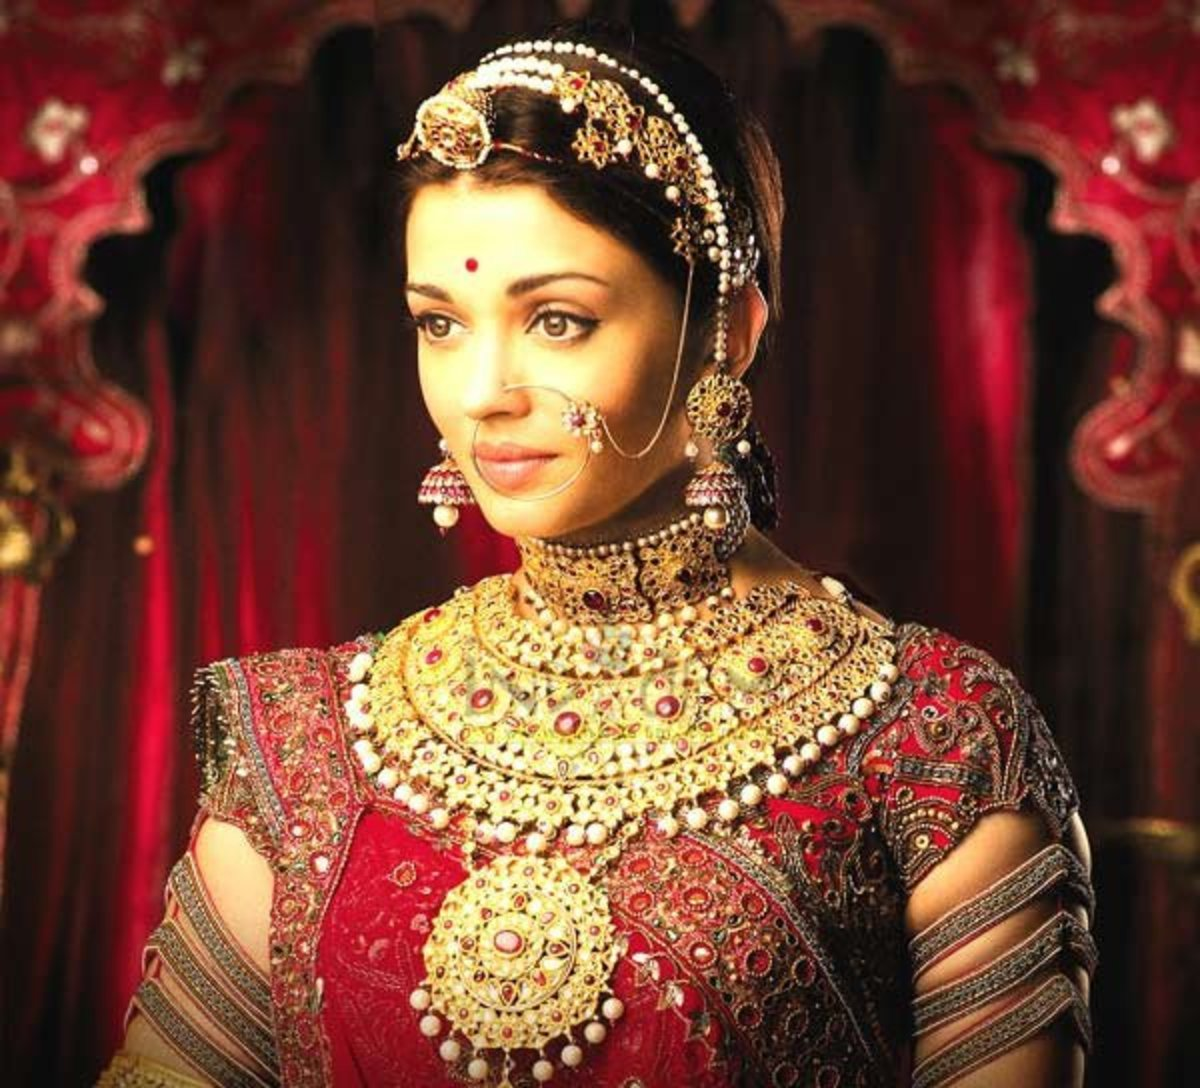 Jewellery for Indian Brides: The Rajasthani Style